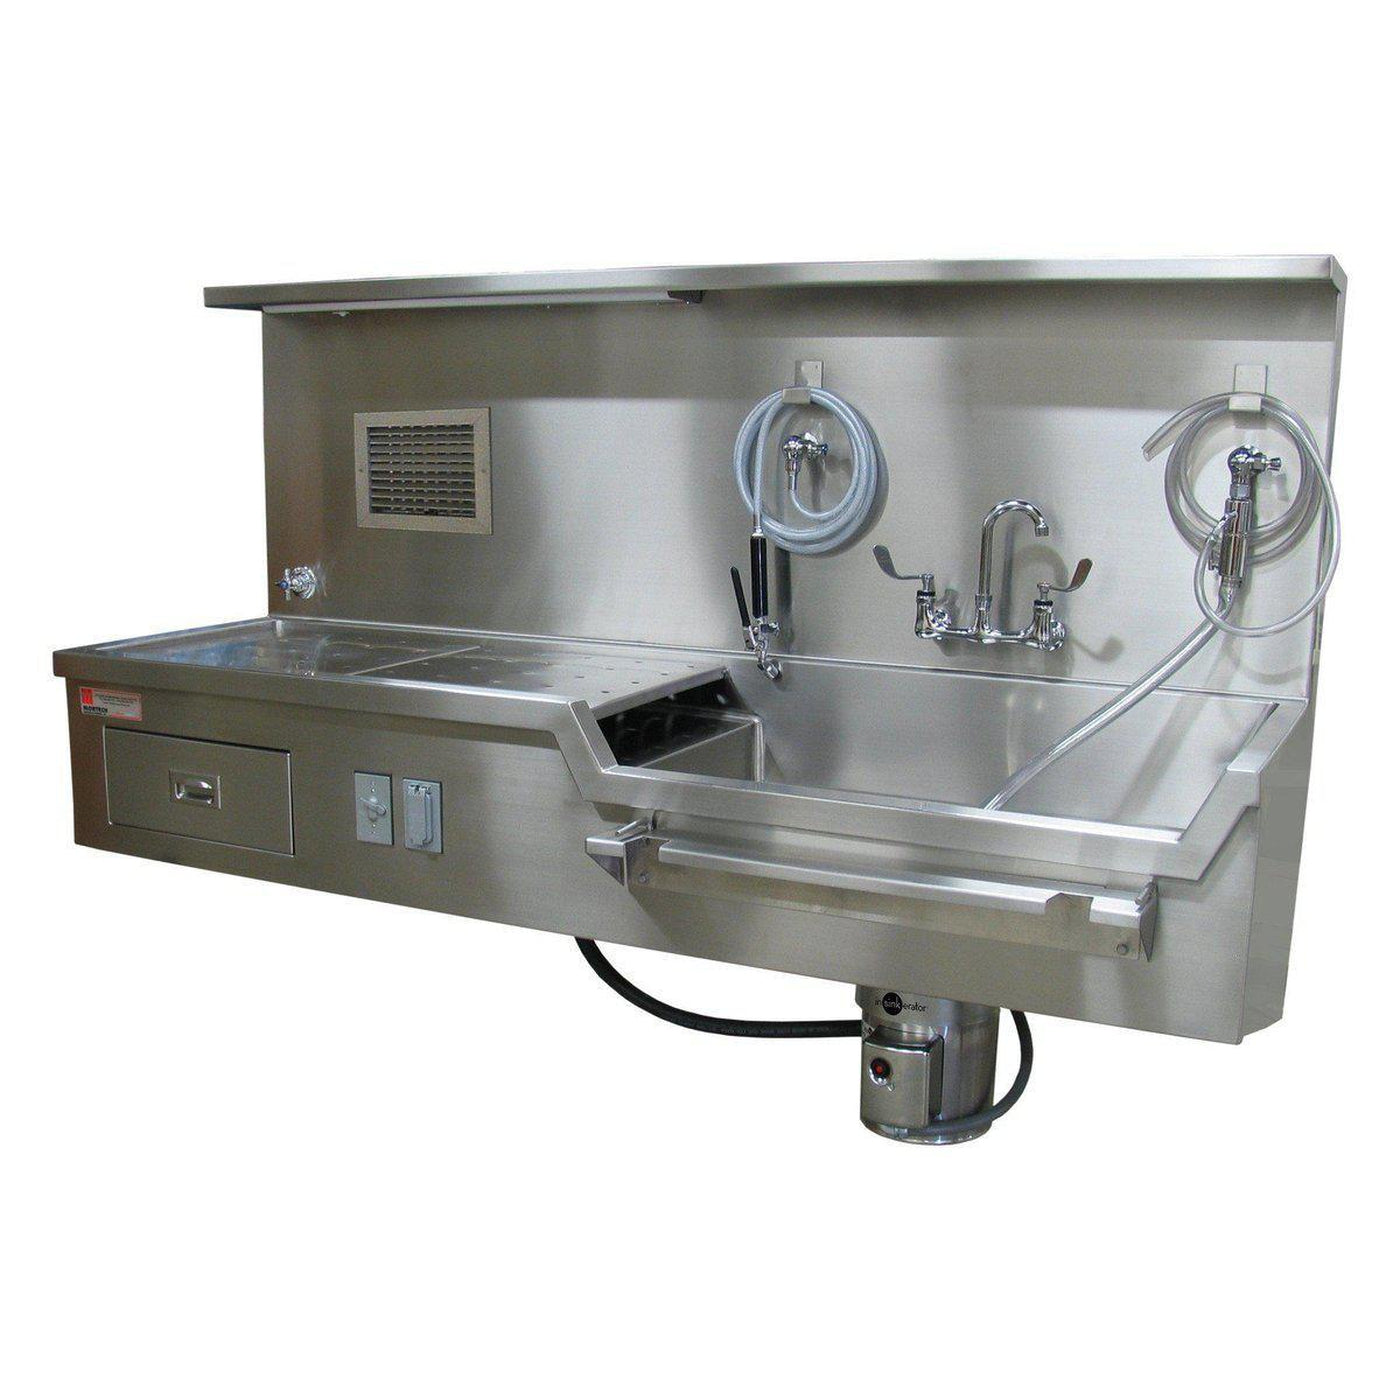 Wall Mount Autopsy Station, Right Sink-Sink Station-Mortech Manufacturing Company Inc. Quality Stainless Steel Autopsy, Morgue, Funeral Home, Necropsy, Veterinary / Anatomy, Dissection Equipment and Accessories